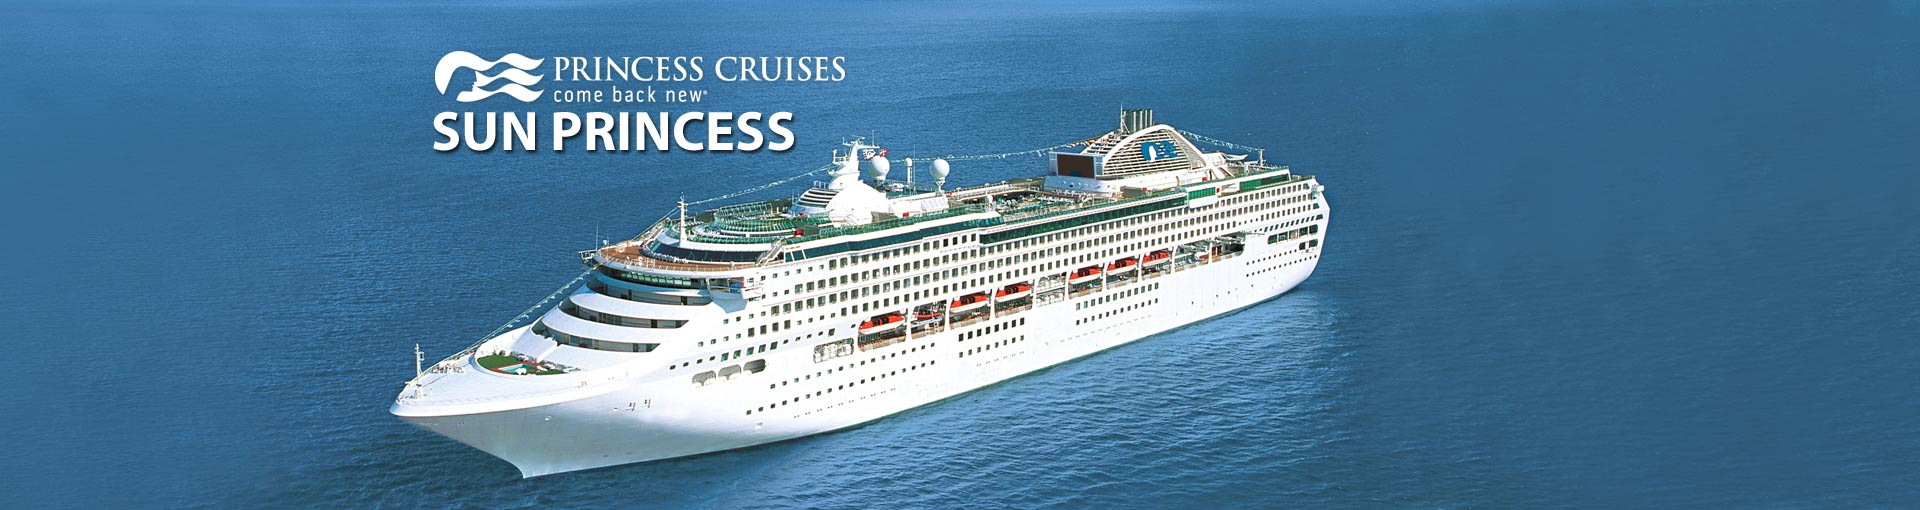 Princess Cruise Deals 2019 Lamoureph Blog